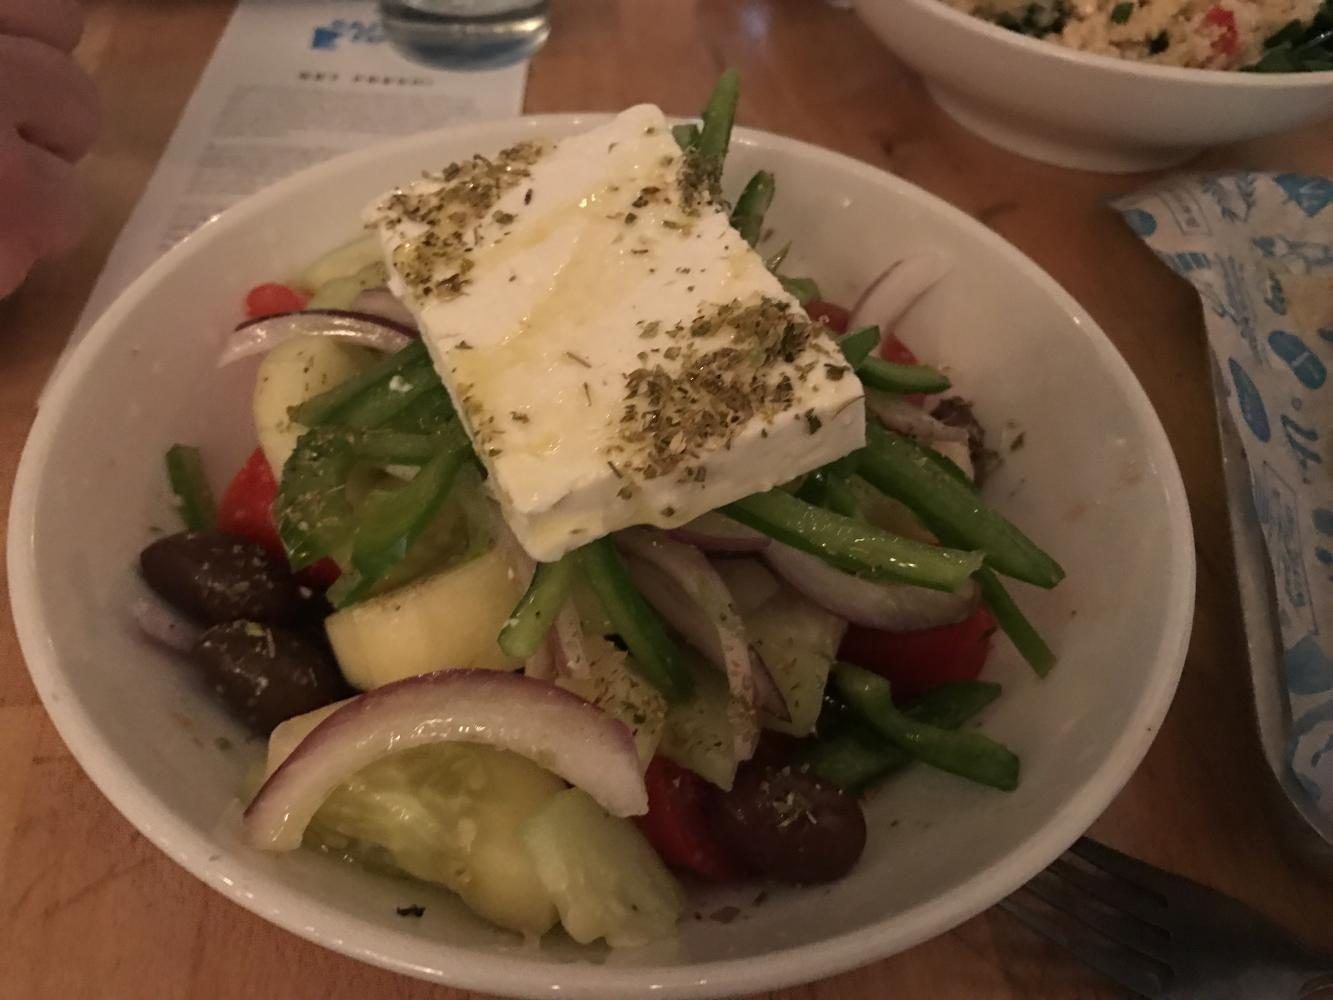 The Greek salad with feta is served on top of mix of tomatoes, olives, green beans, and cucumbers.